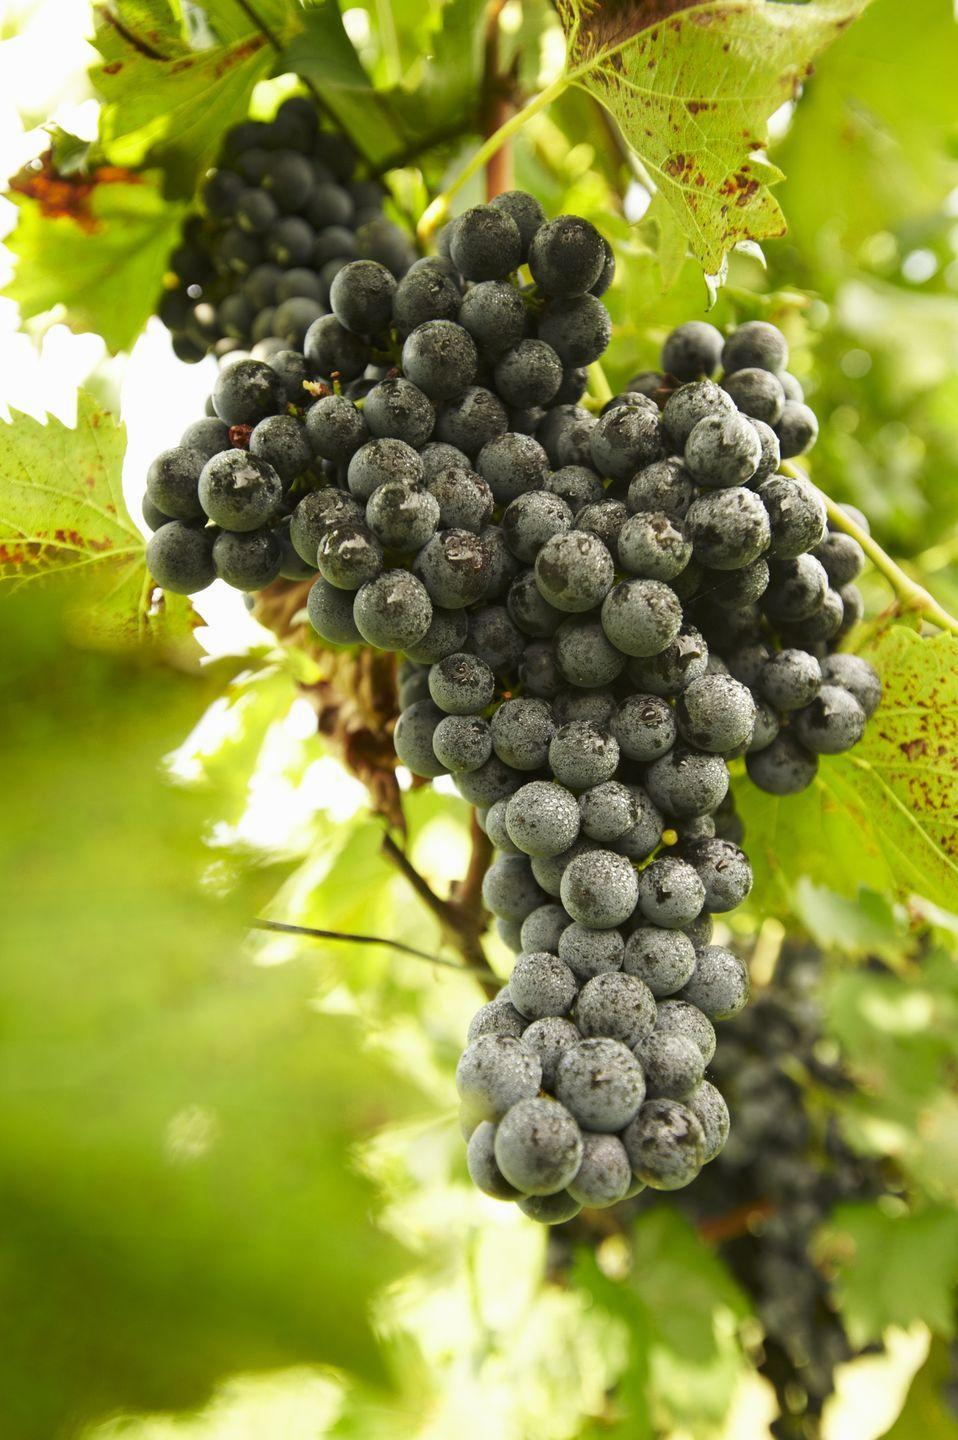 <p><strong>State Red Wine Grape: Chambourcin </strong></p><p>In 2019, the state declared the Chambourcin their official red wine grape, and the Vignoles became the official white wine grape. </p>